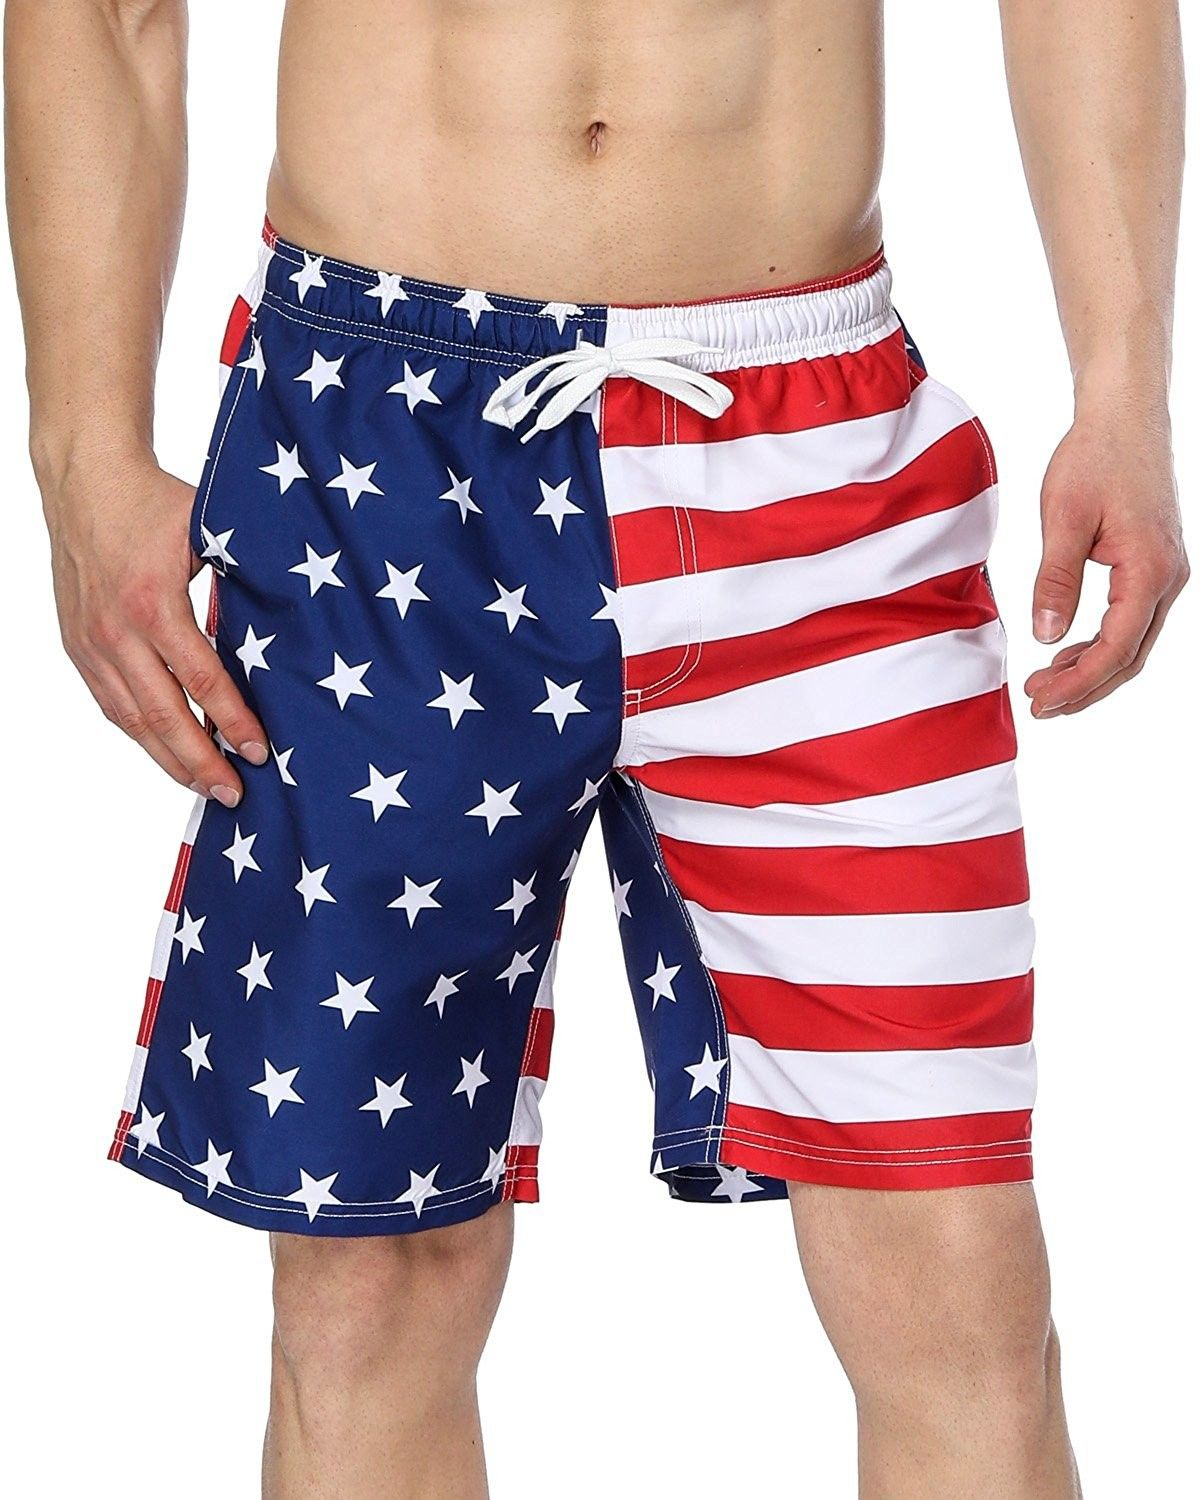 49934edf4 Men's American Flag Swim Trunks US Flag Bathing Suit Board Swim ...